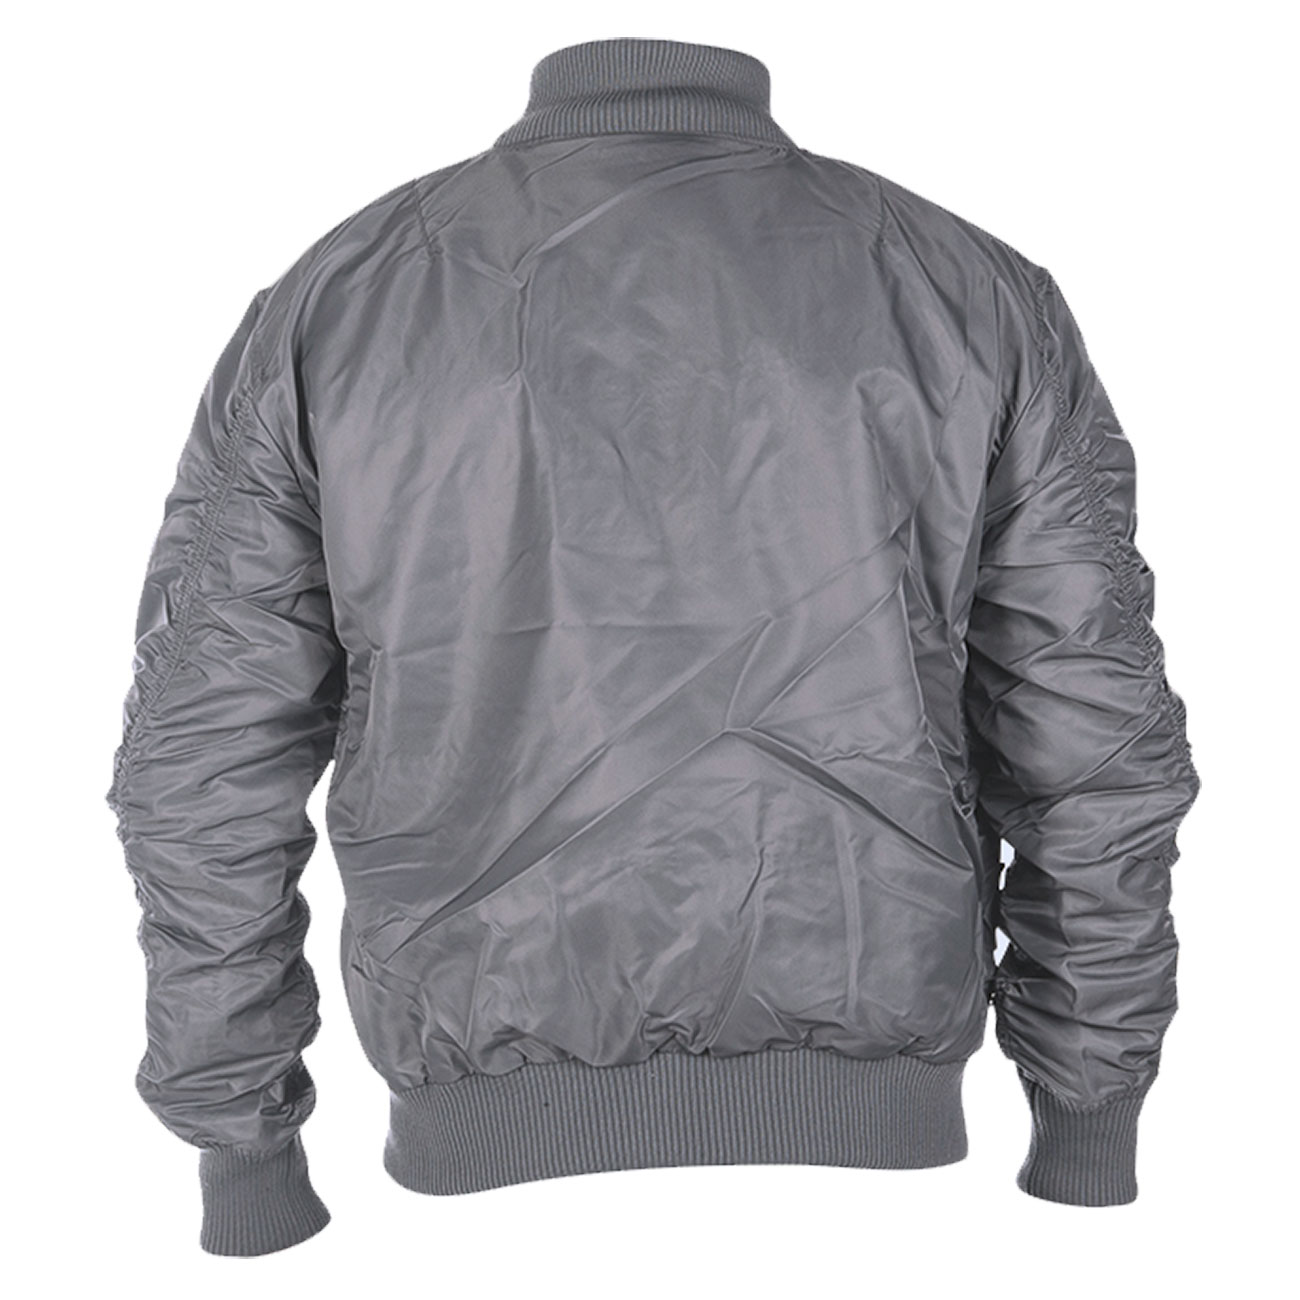 Mil-Tec US Tactical Fliegerjacke urban grey 1